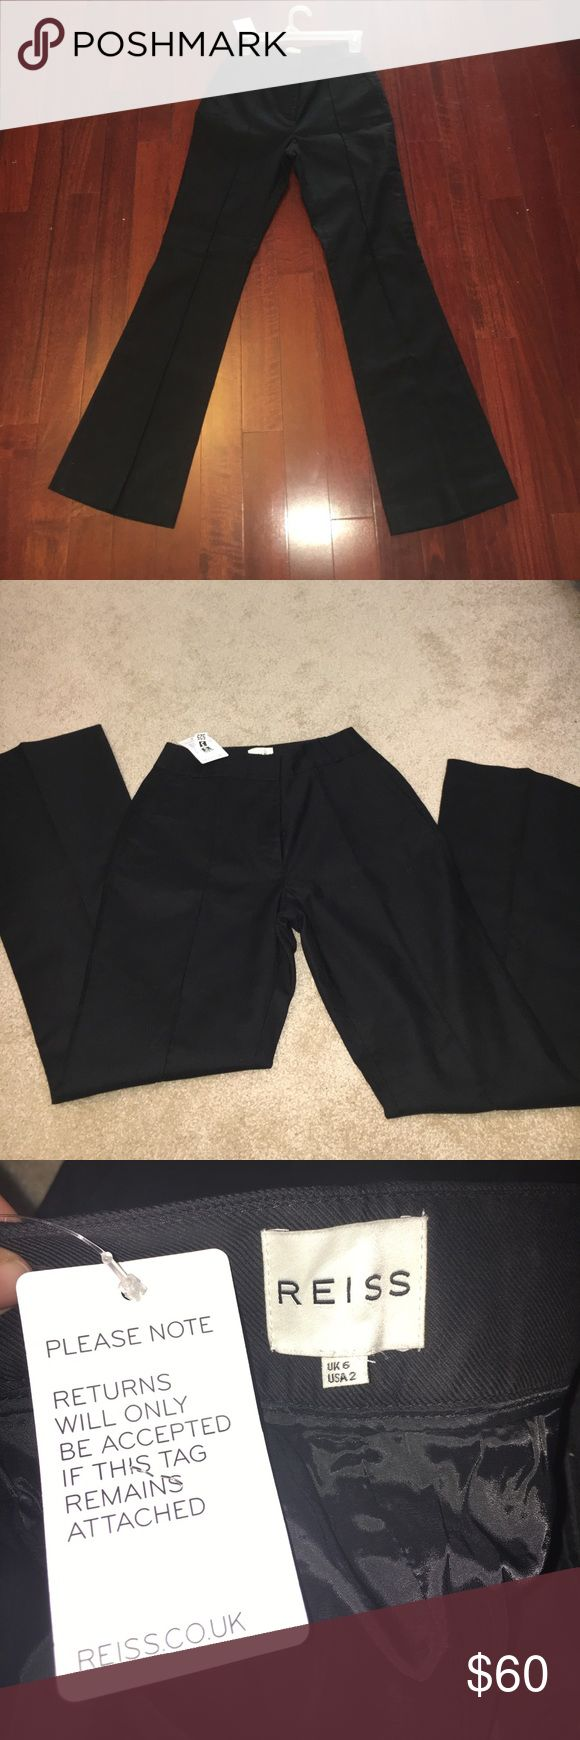 Brand New Reiss Trouser Pleat Dress pants They are new pleat crease flat front designer dress pants never worn . Tags attached . Inseam is 30 waist is 24 . The designer dress pants are $265 & up . www.reiss.com too small for me Reiss Pants Trousers